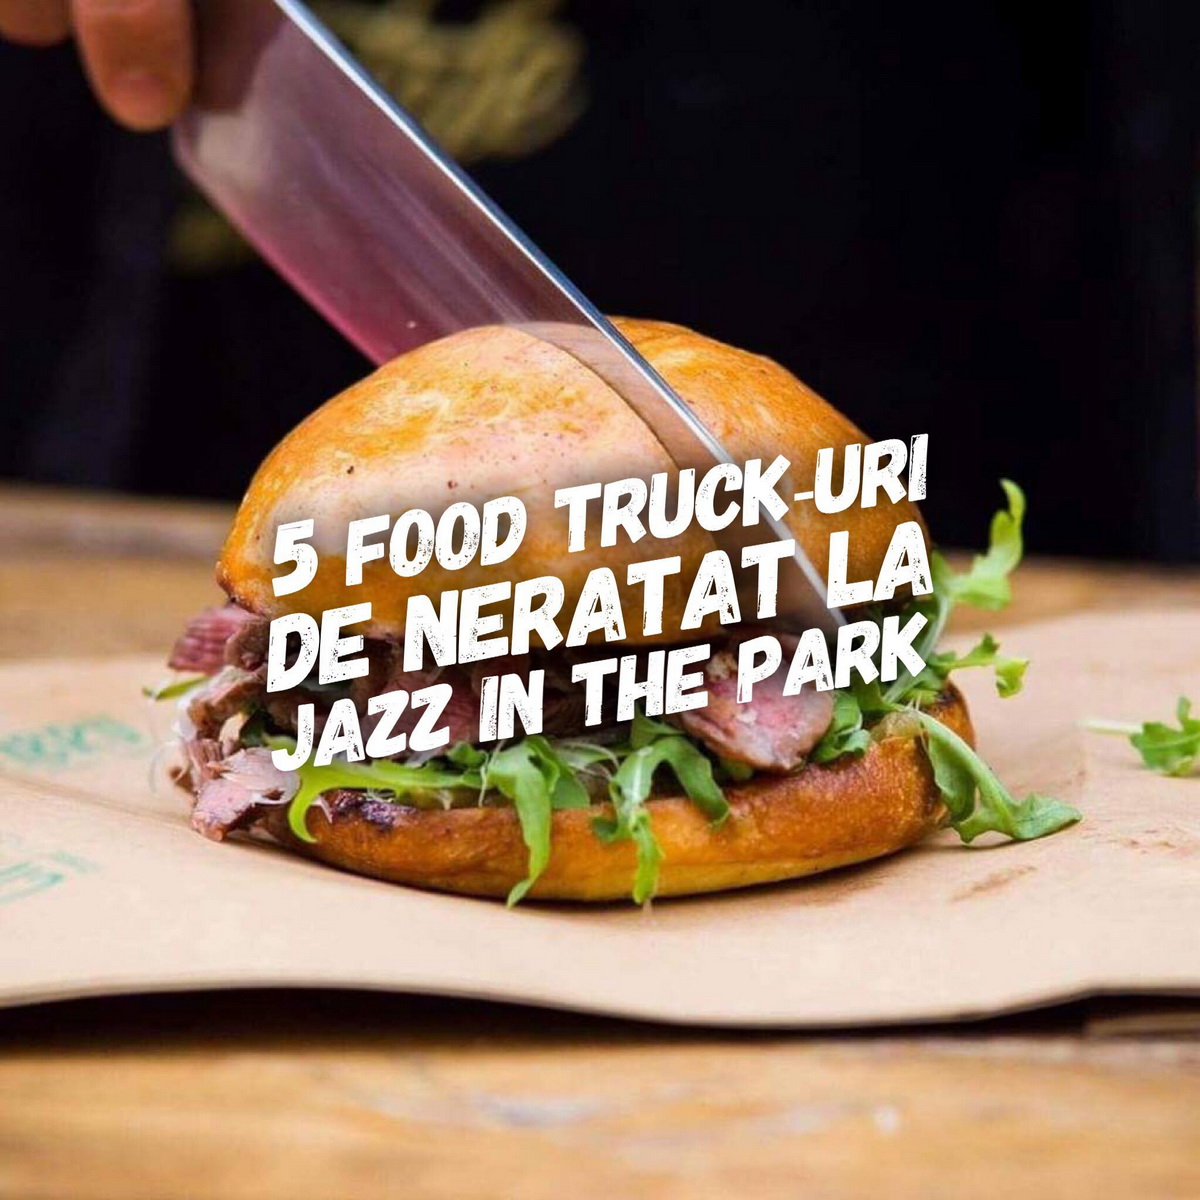 5 food truck-uri de neratat la Jazz in the park 2018